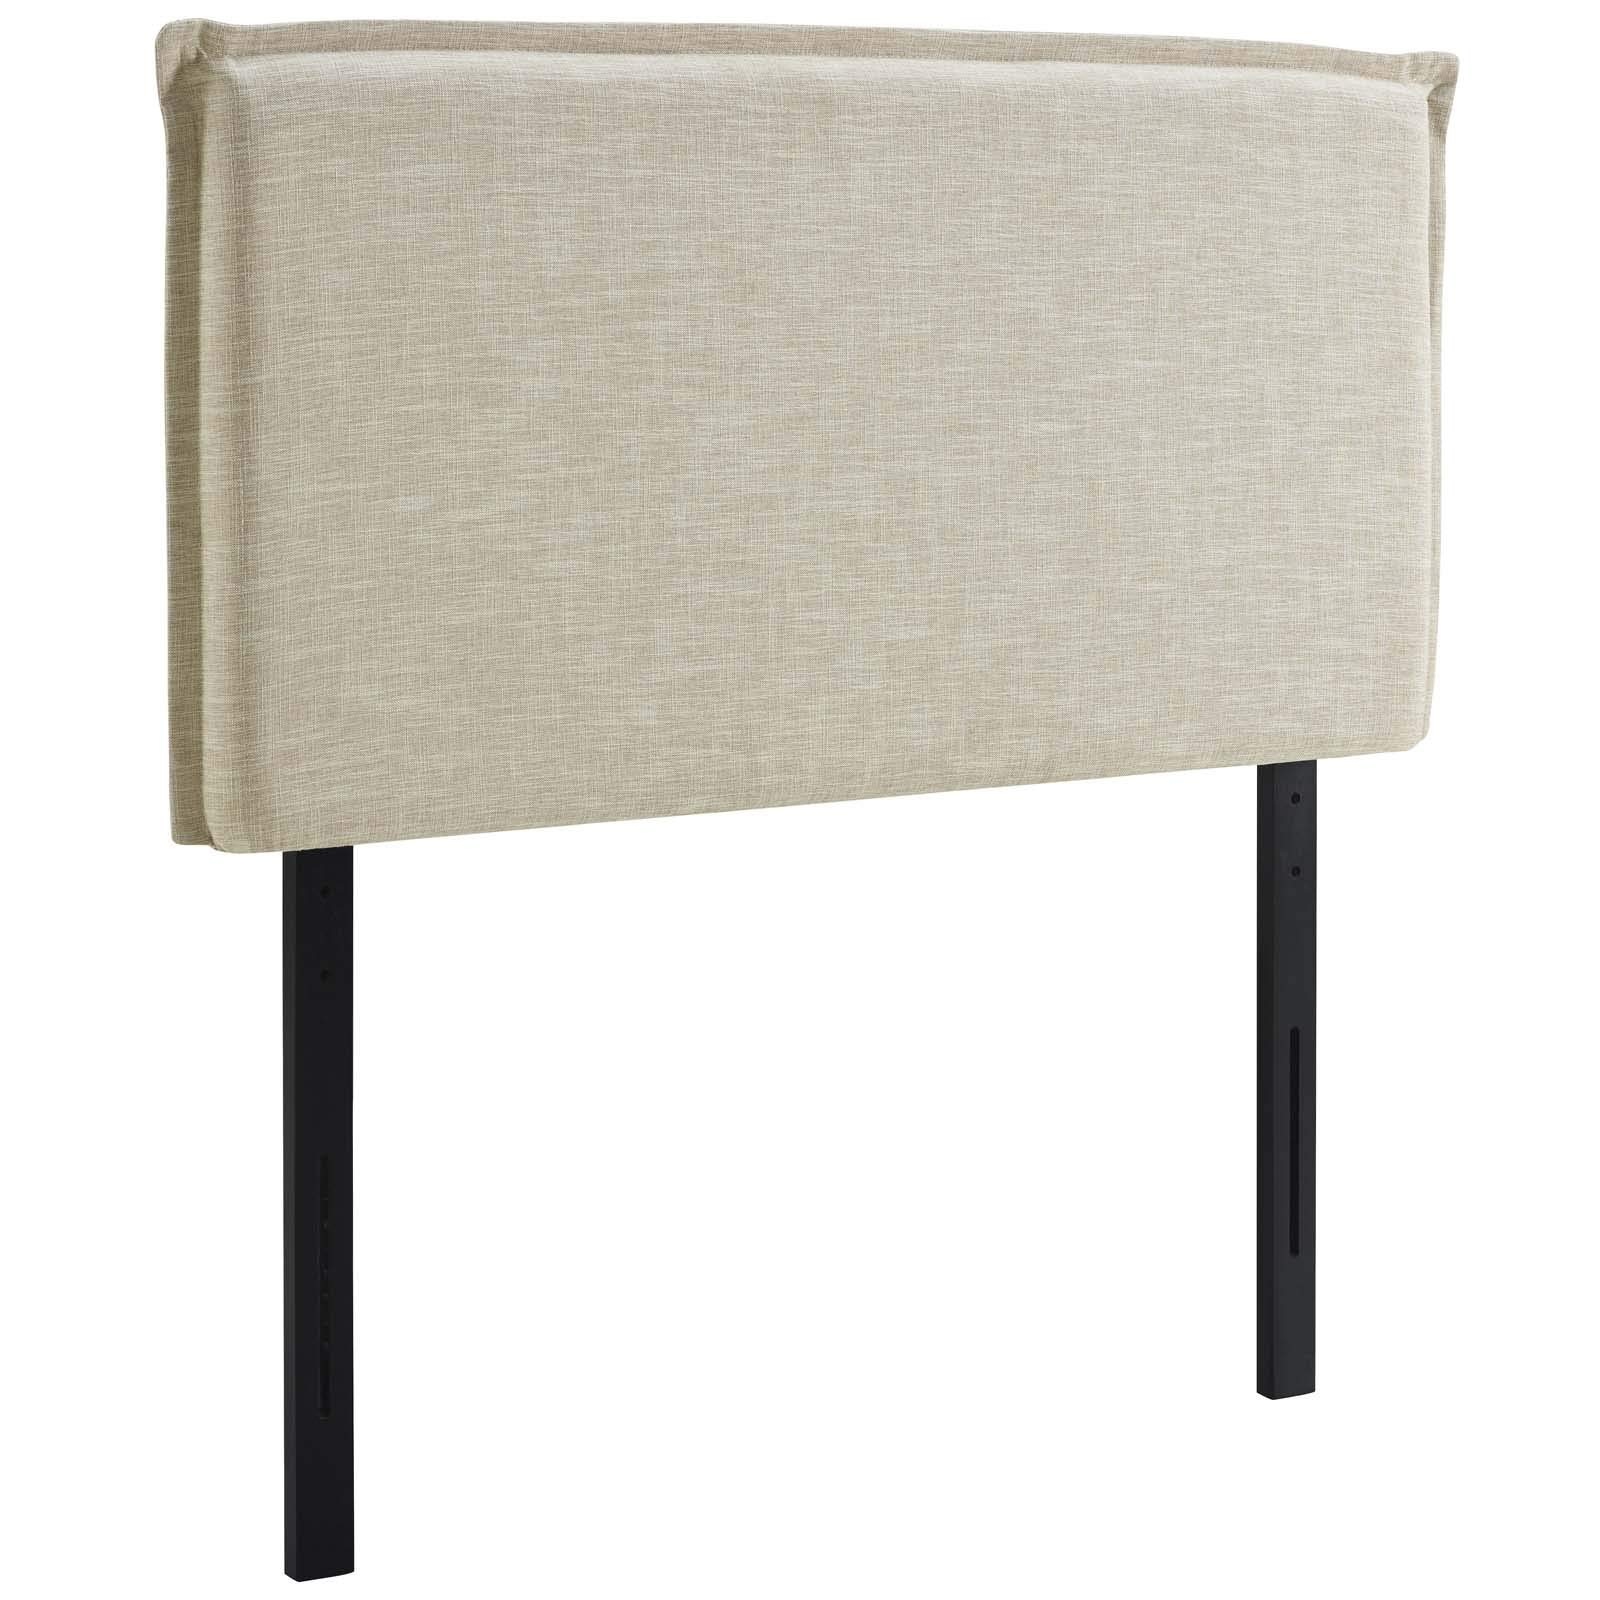 Modway Camille Linen Fabric Upholstered Twin Headboard in Beige with French Piping